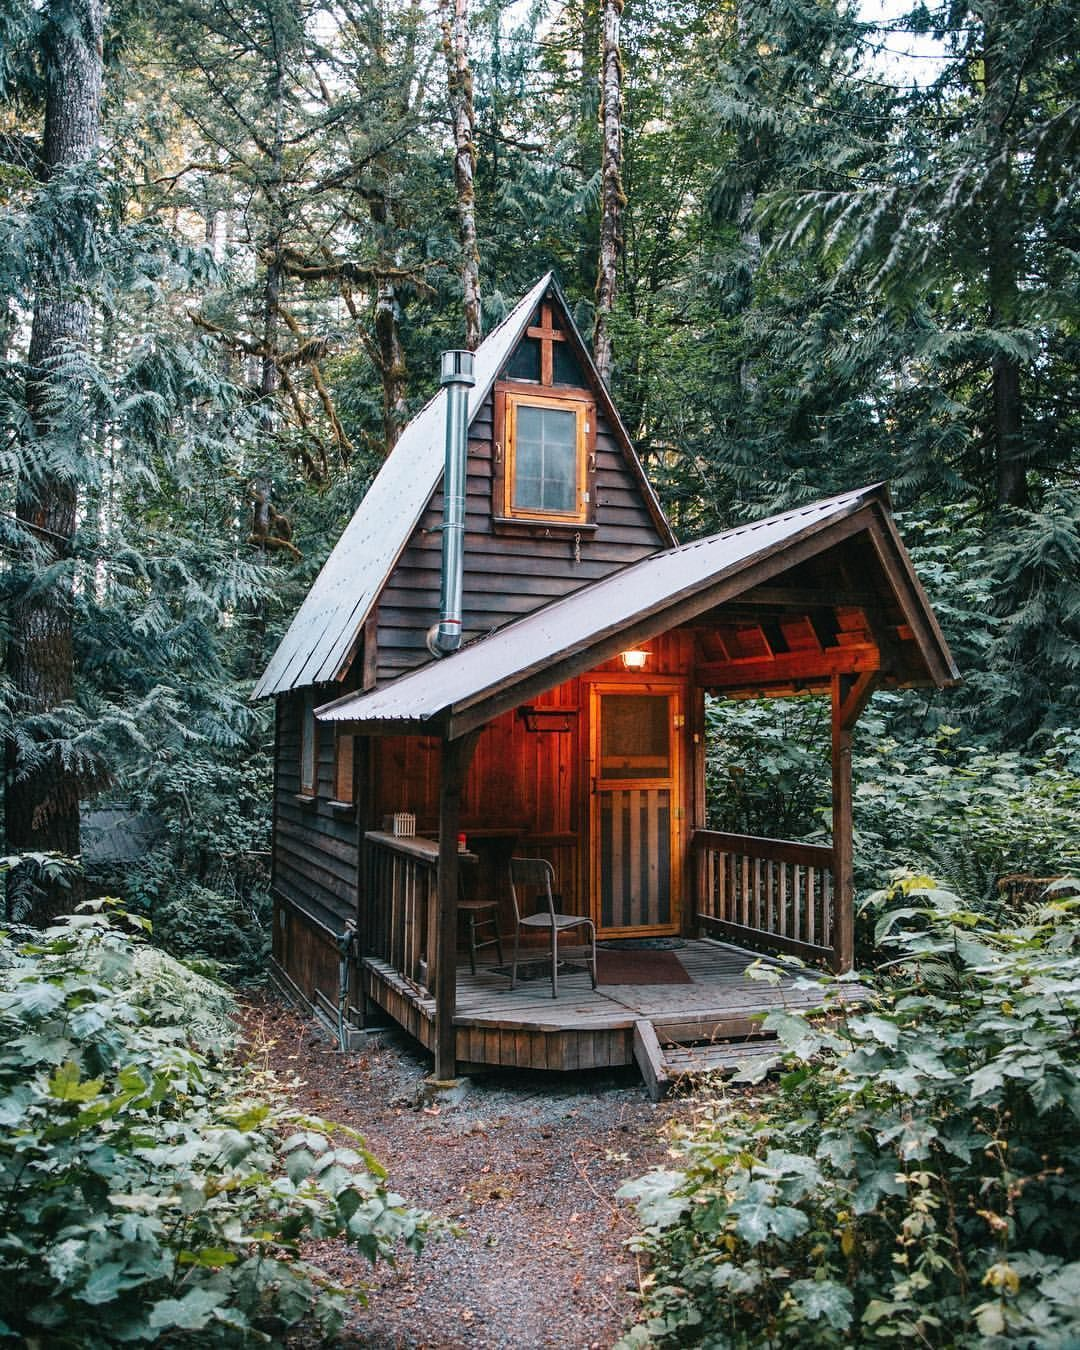 Tiny Home Designs: The Following Is A Collection Of Tree Houses That Have Unique And Beautiful Designs From All